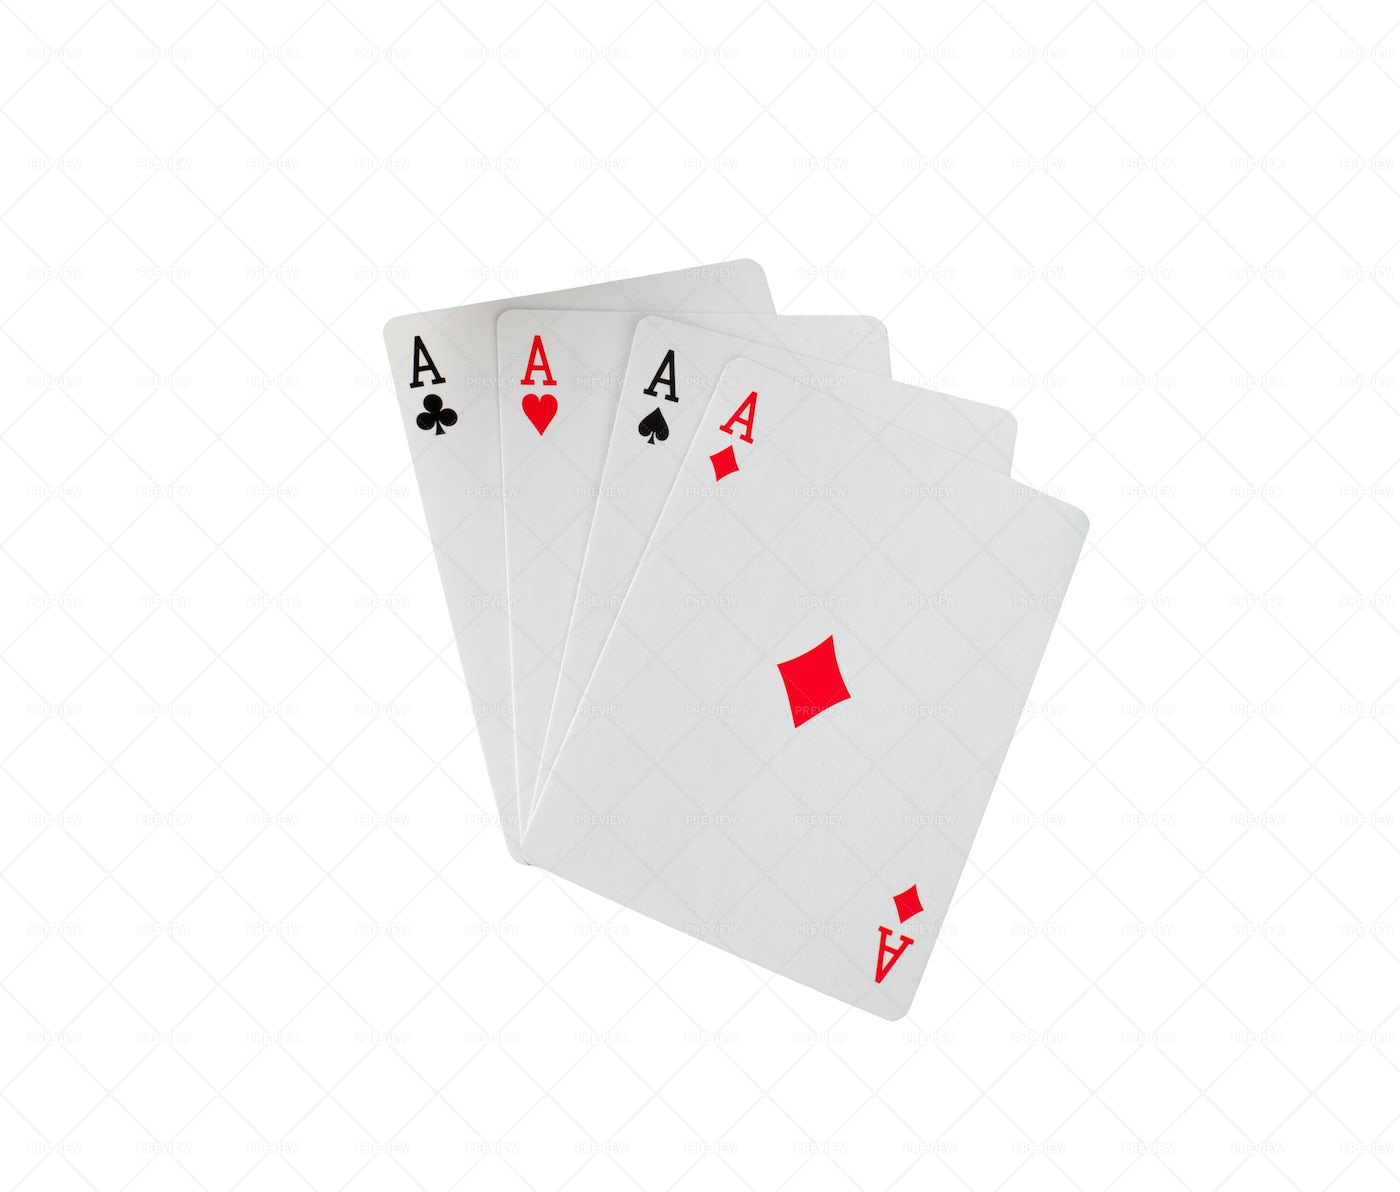 Playing Cards On White: Stock Photos